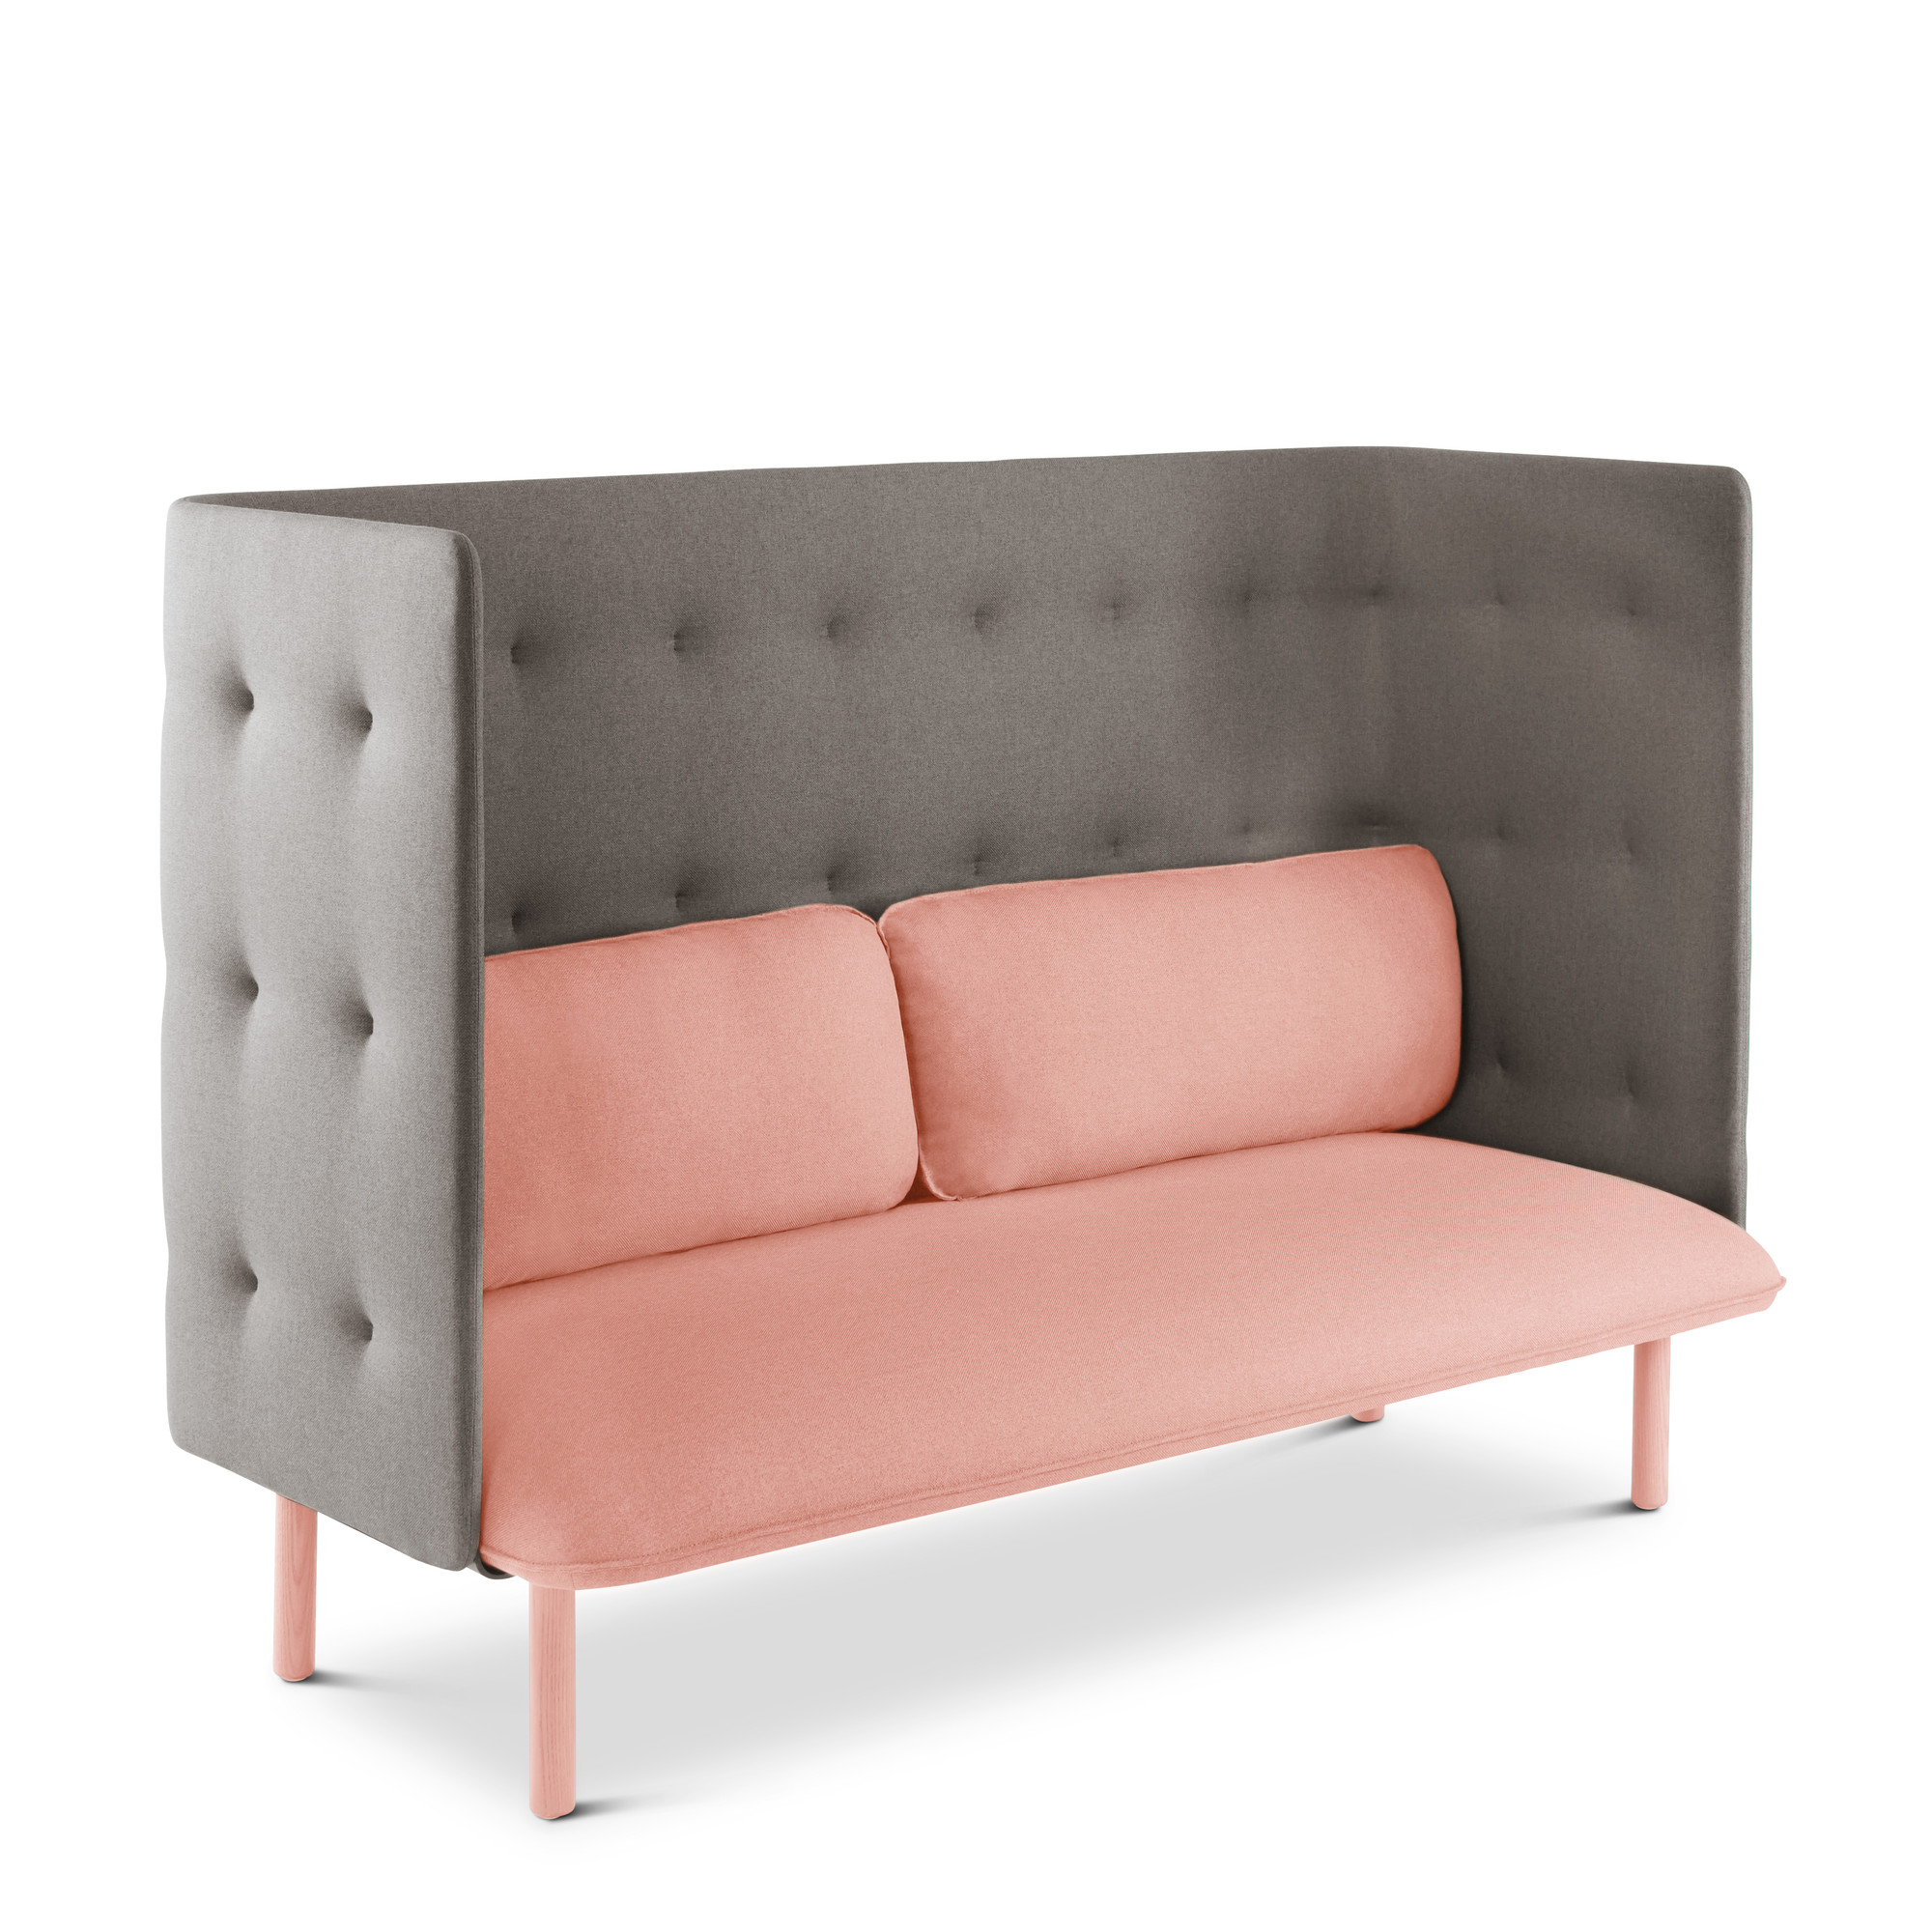 Blush Gray QT Lounge SofaBlushhi Res